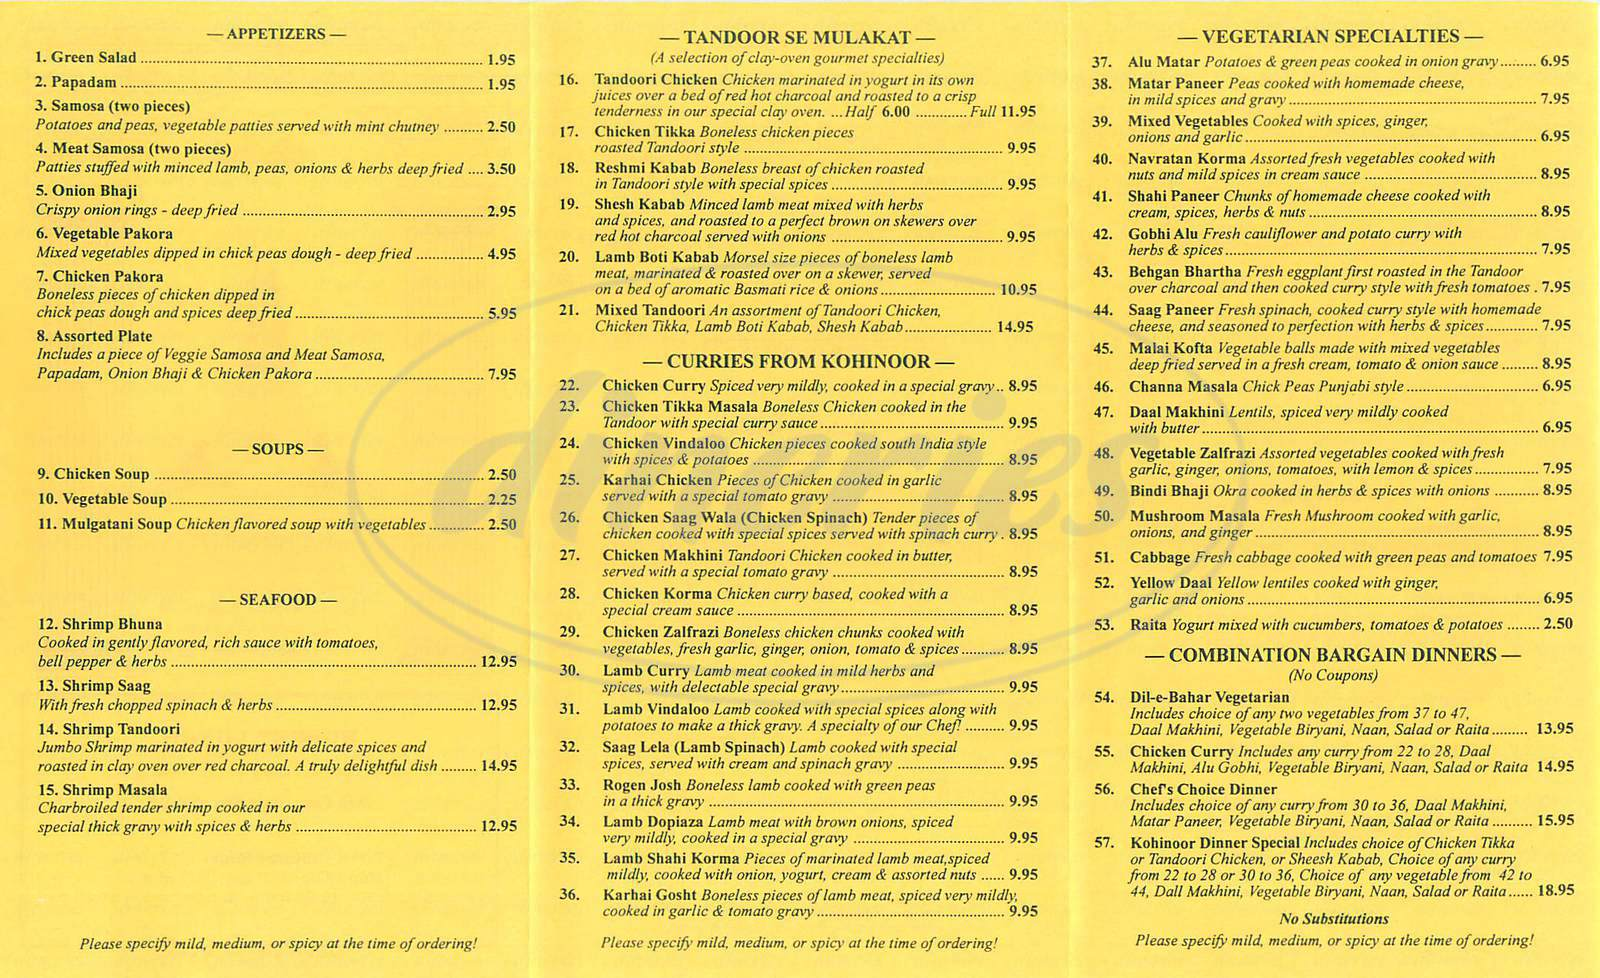 Big menu for Kohinoor Cuisine of India, Thousand Oaks